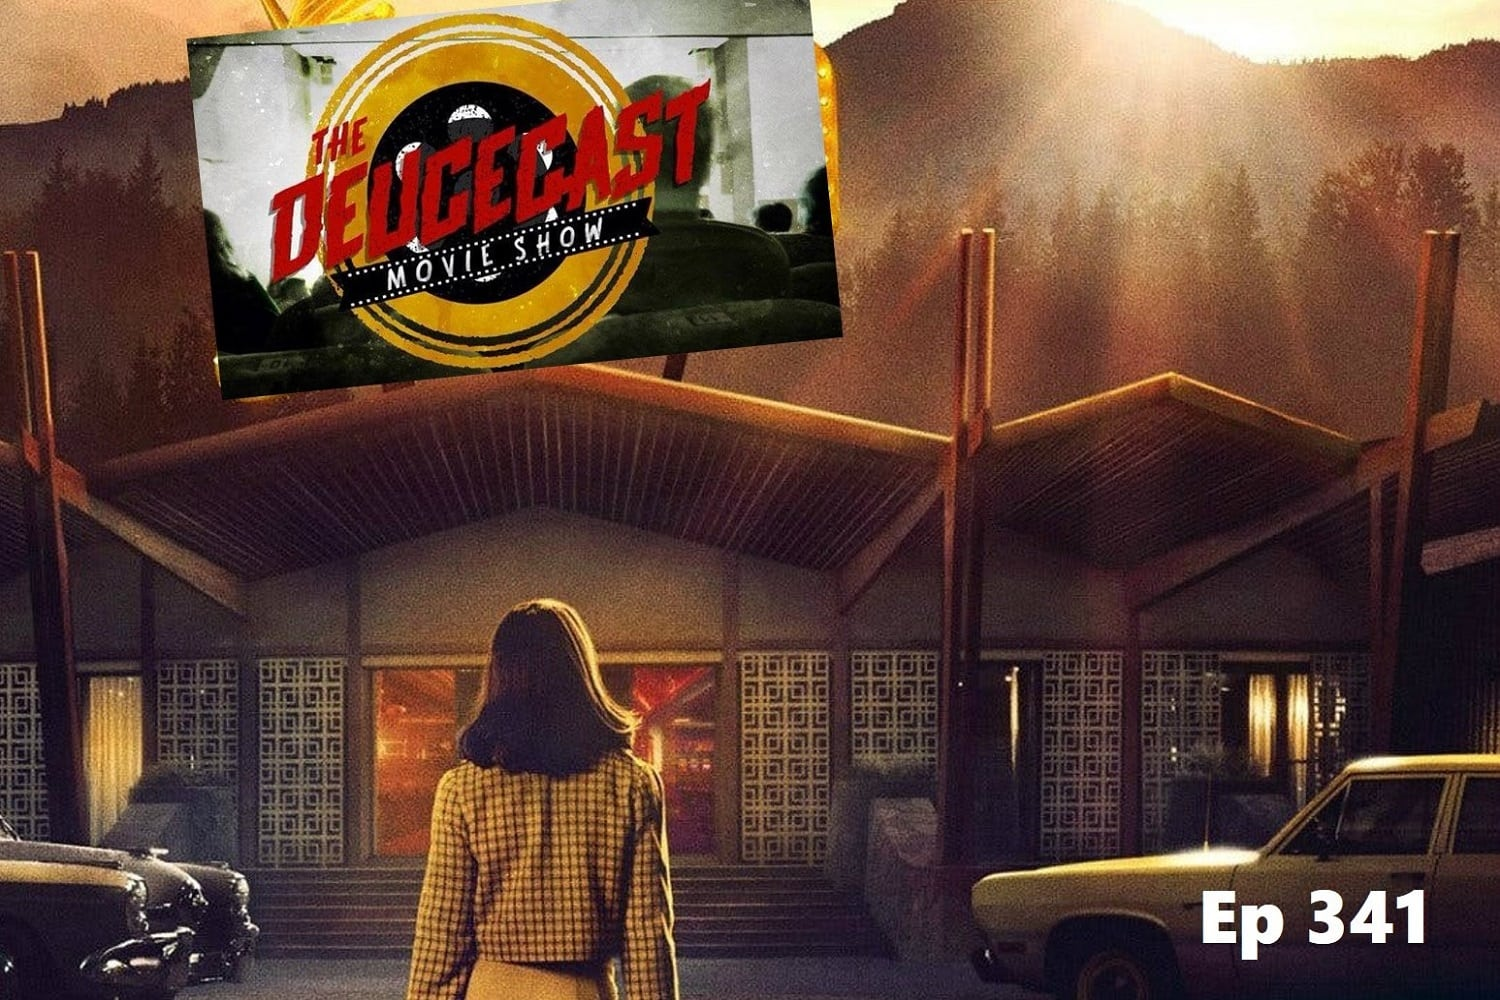 The Deucecast Movie Show #341: Fall Movie Preview